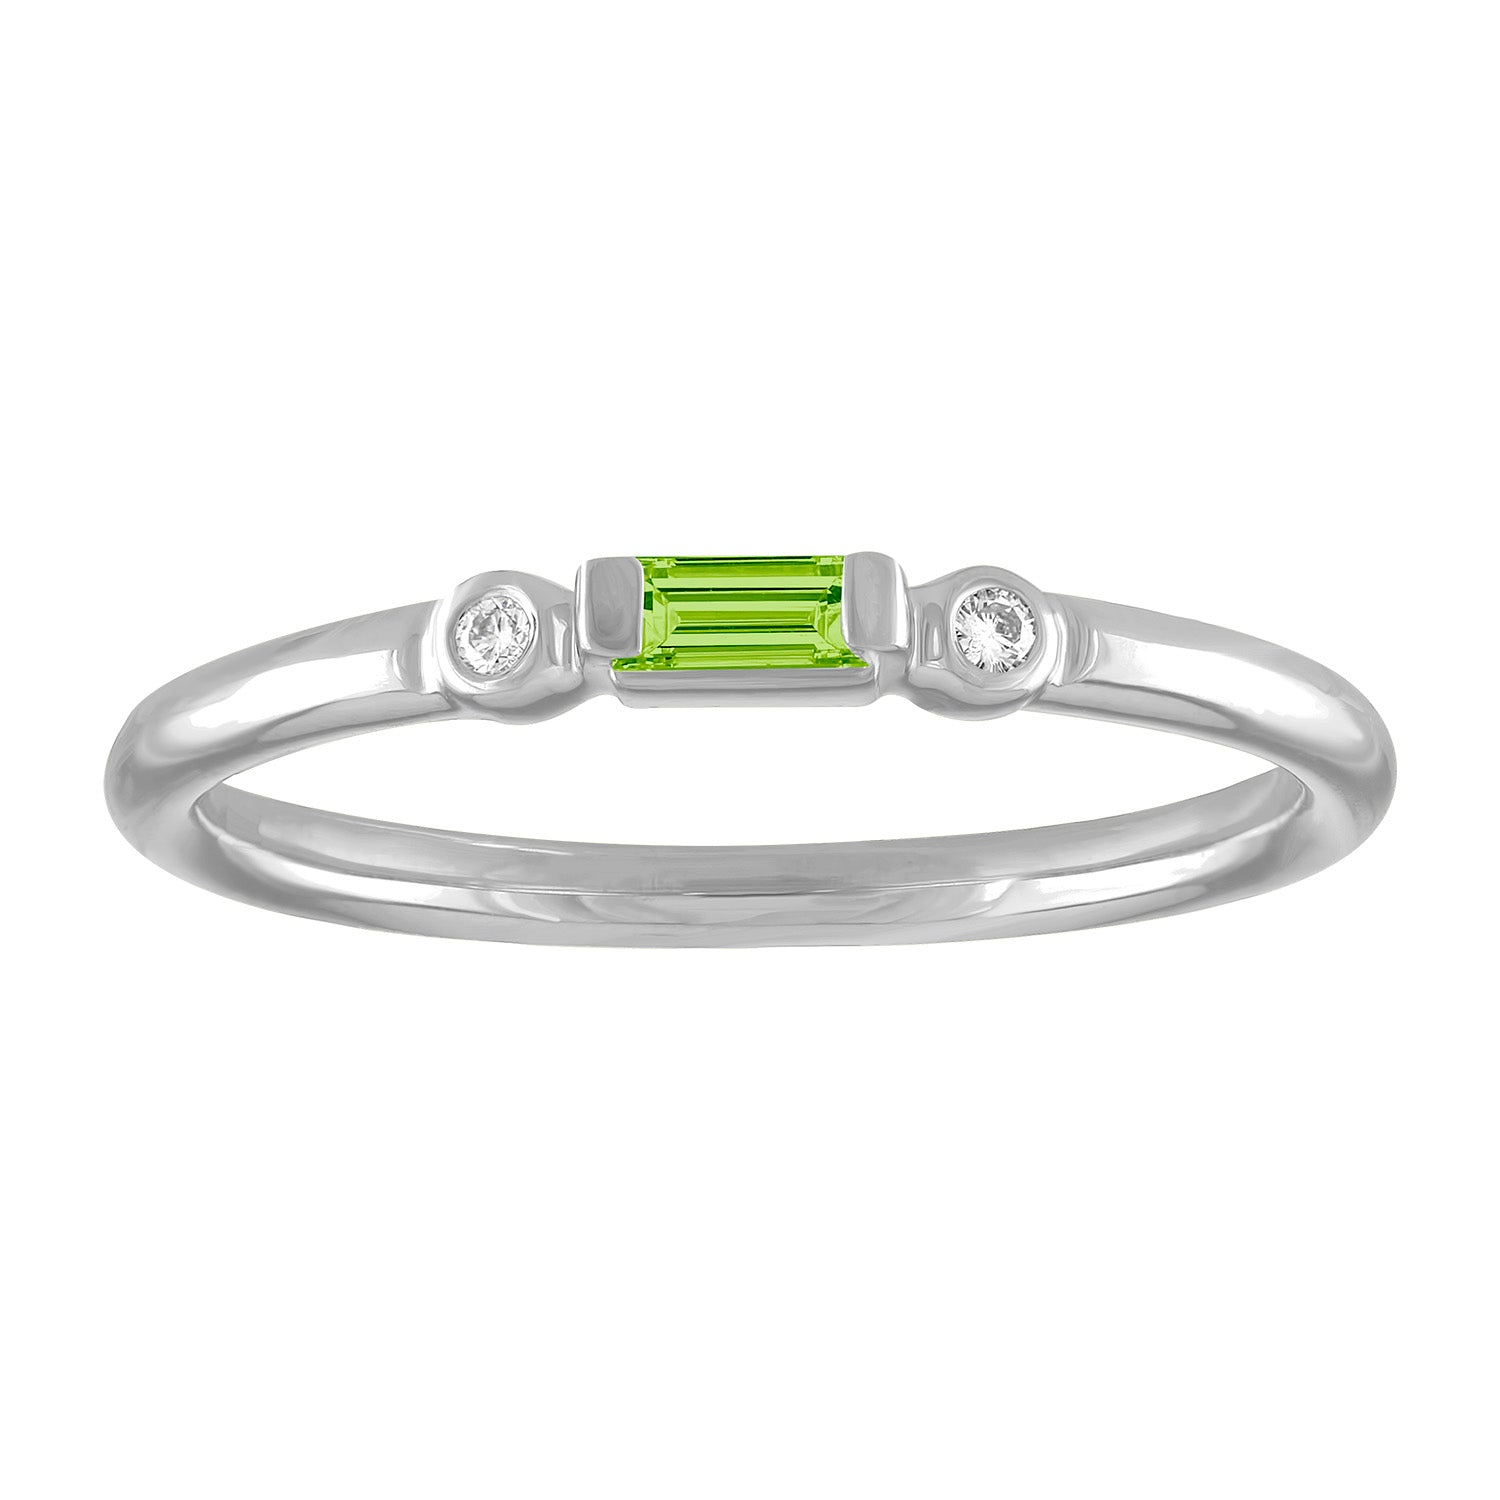 Olive ring with peridot baguette and two round diamonds